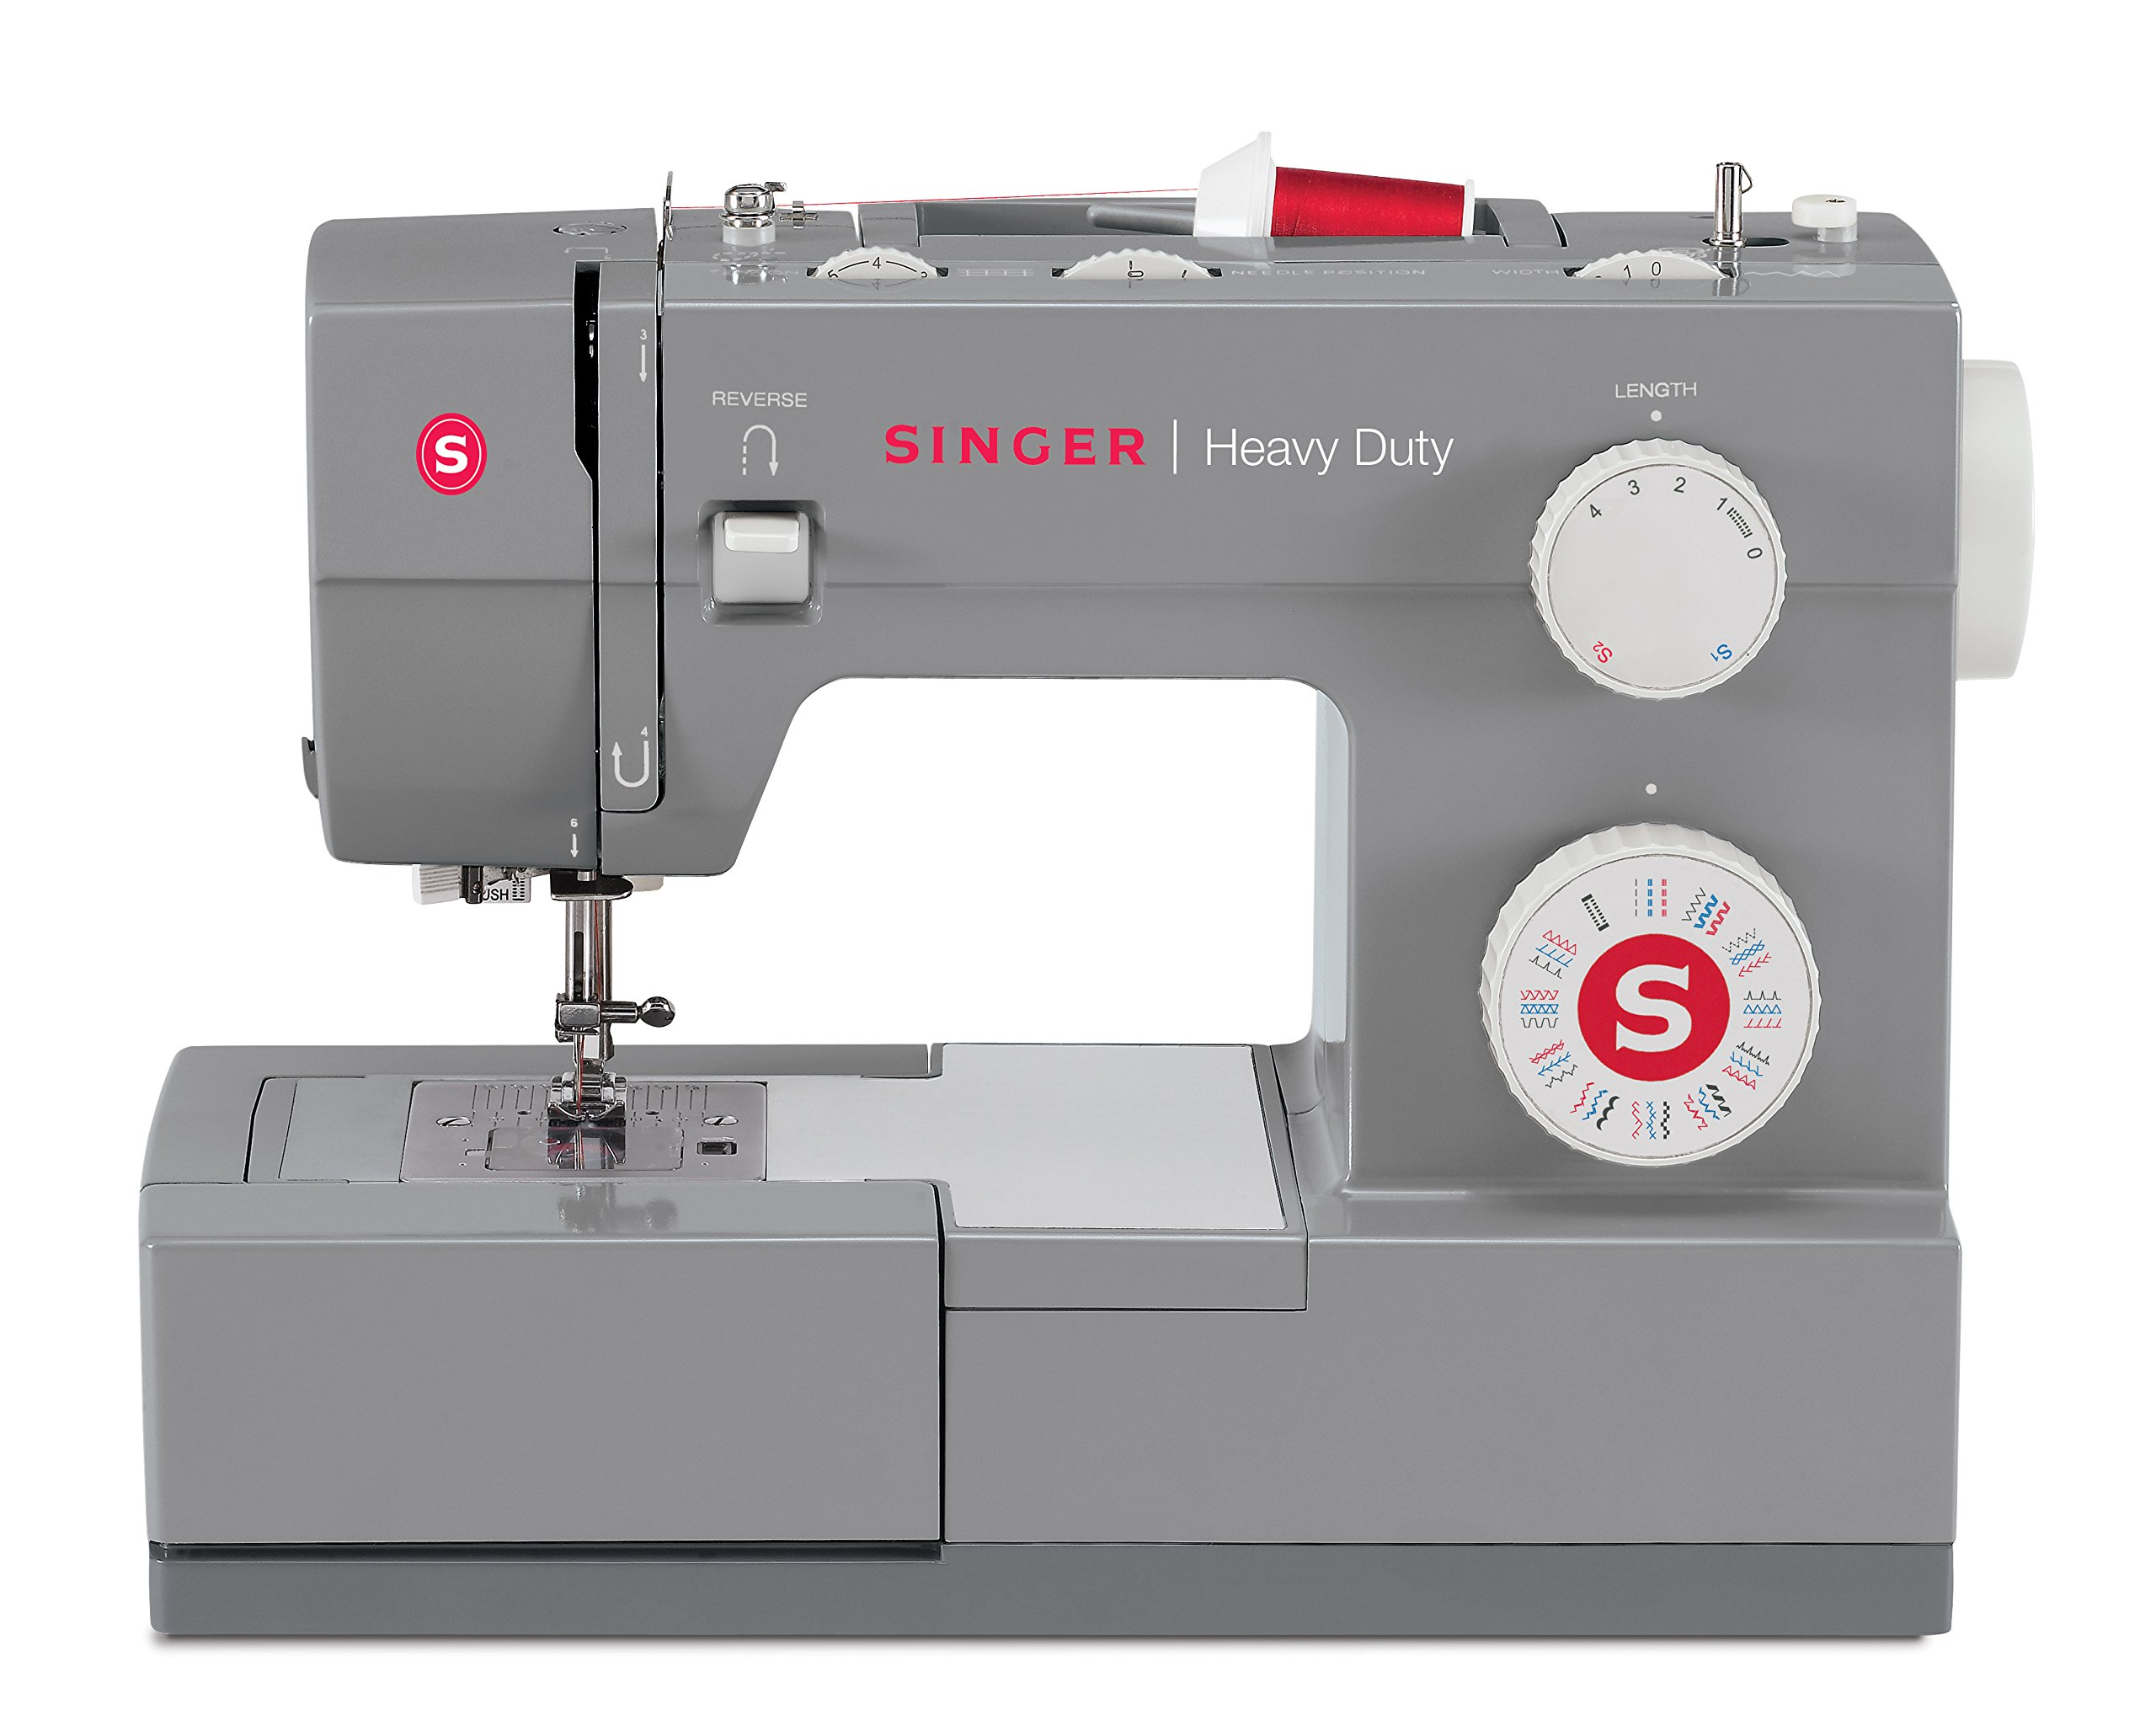 SINGER | Heavy Duty 4432 Sewing Machine with 32 Built-in Stitches, Automatic Needle Threader, Metal Frame and Stainless Steel Bedplate, Perfect for Sewing All Types of Fabrics with Ease by SINGER